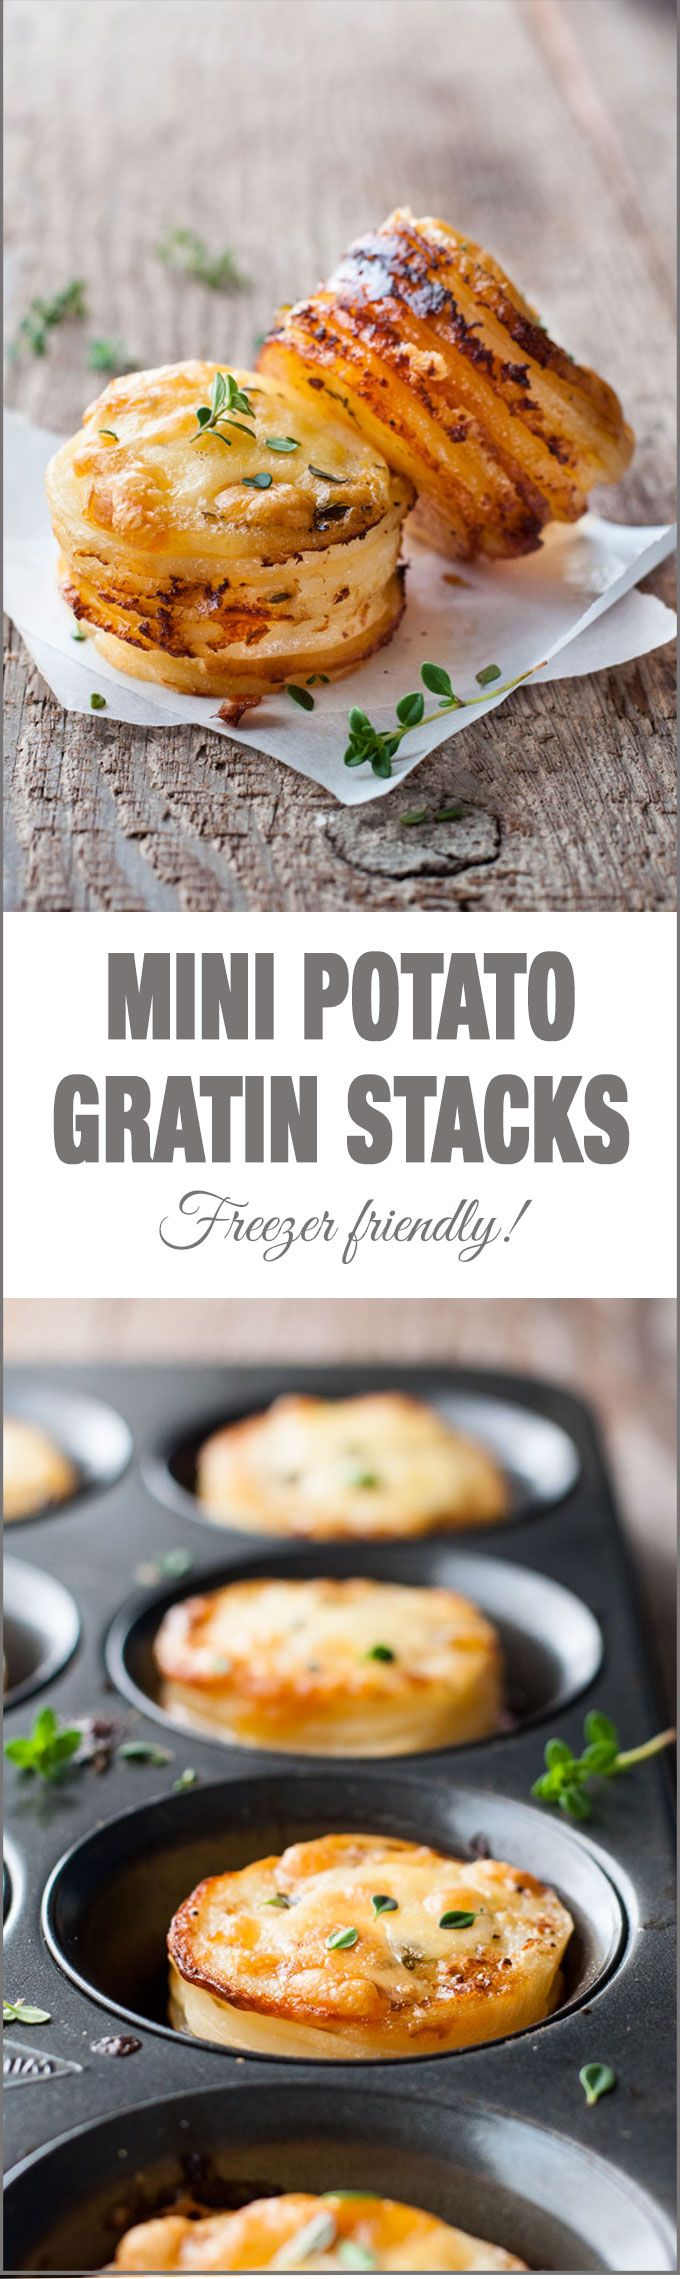 Mini Potato Gratin Stacks